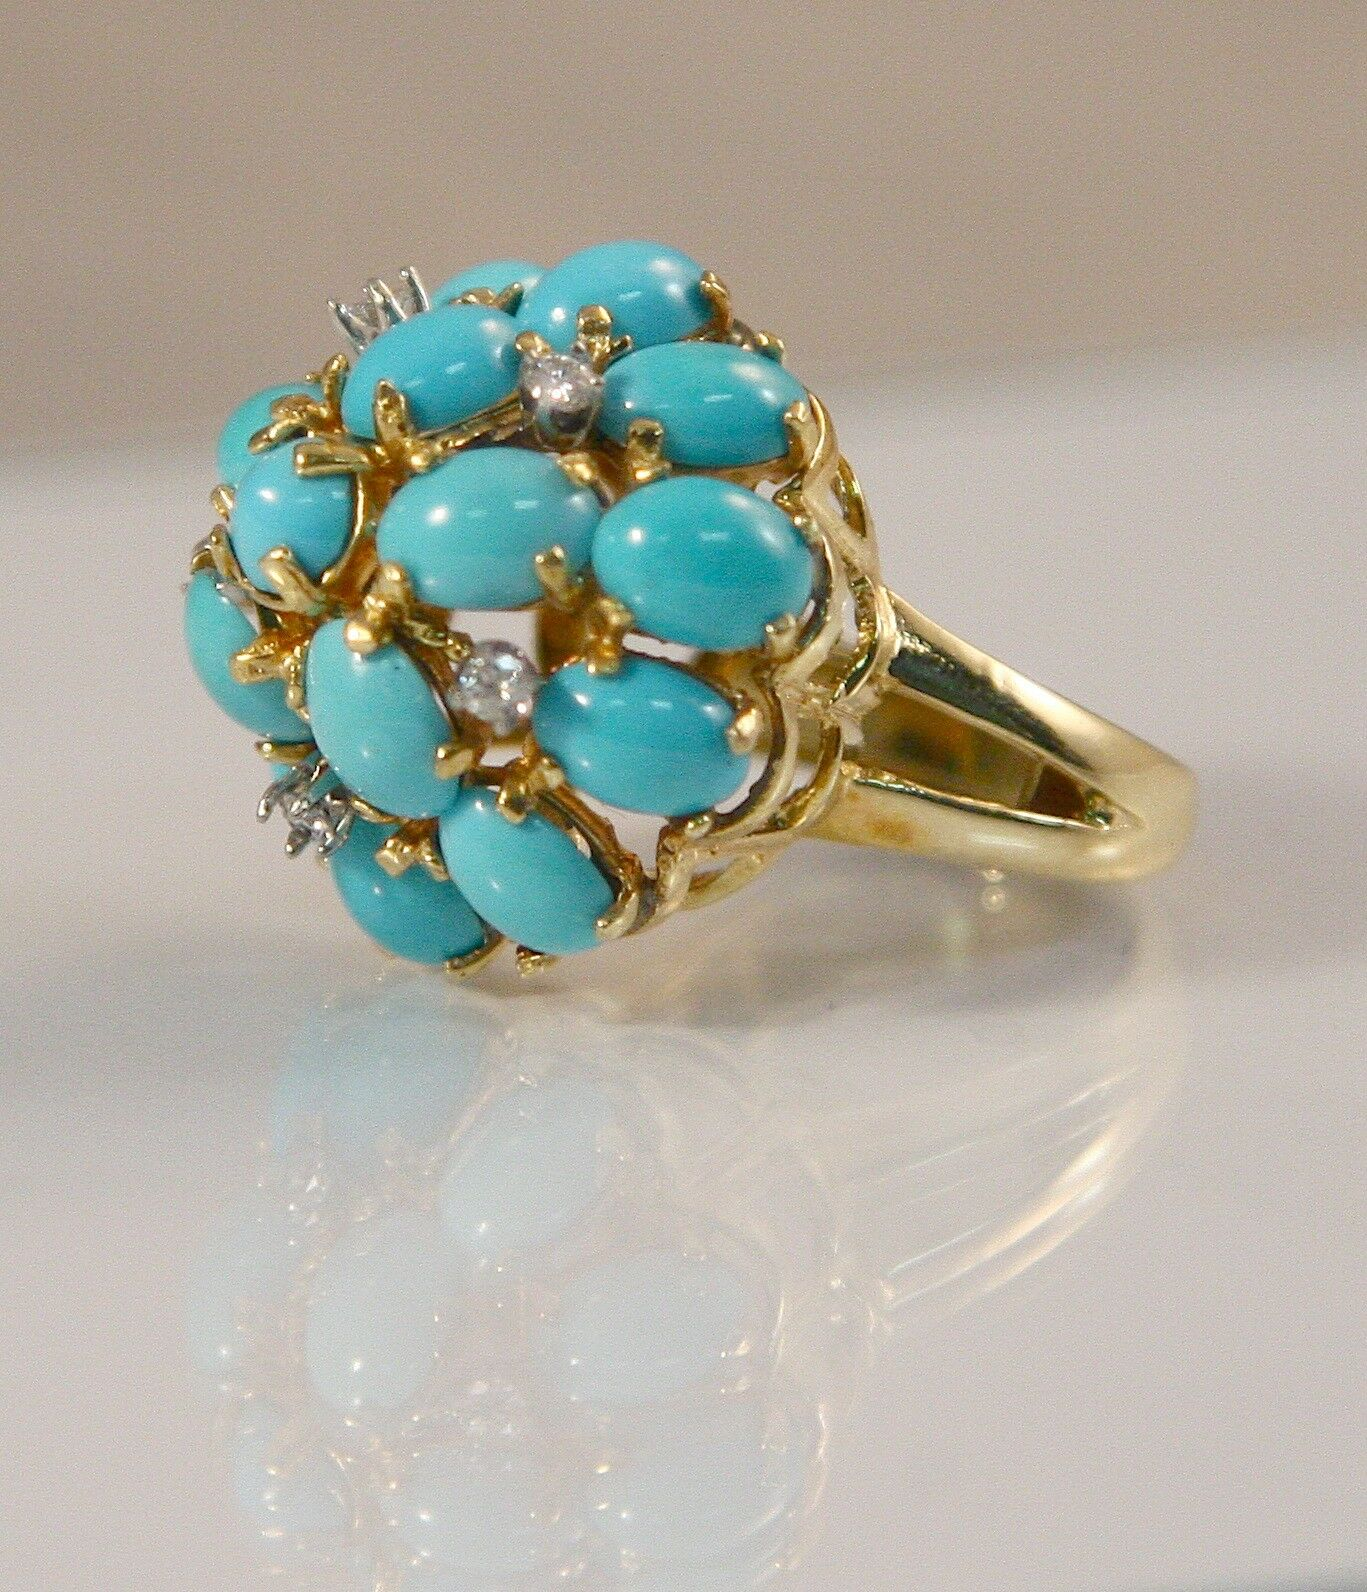 Beautiful 14k Yellow gold Dome Style Turquoise With Diamond Accents Ring Size 5